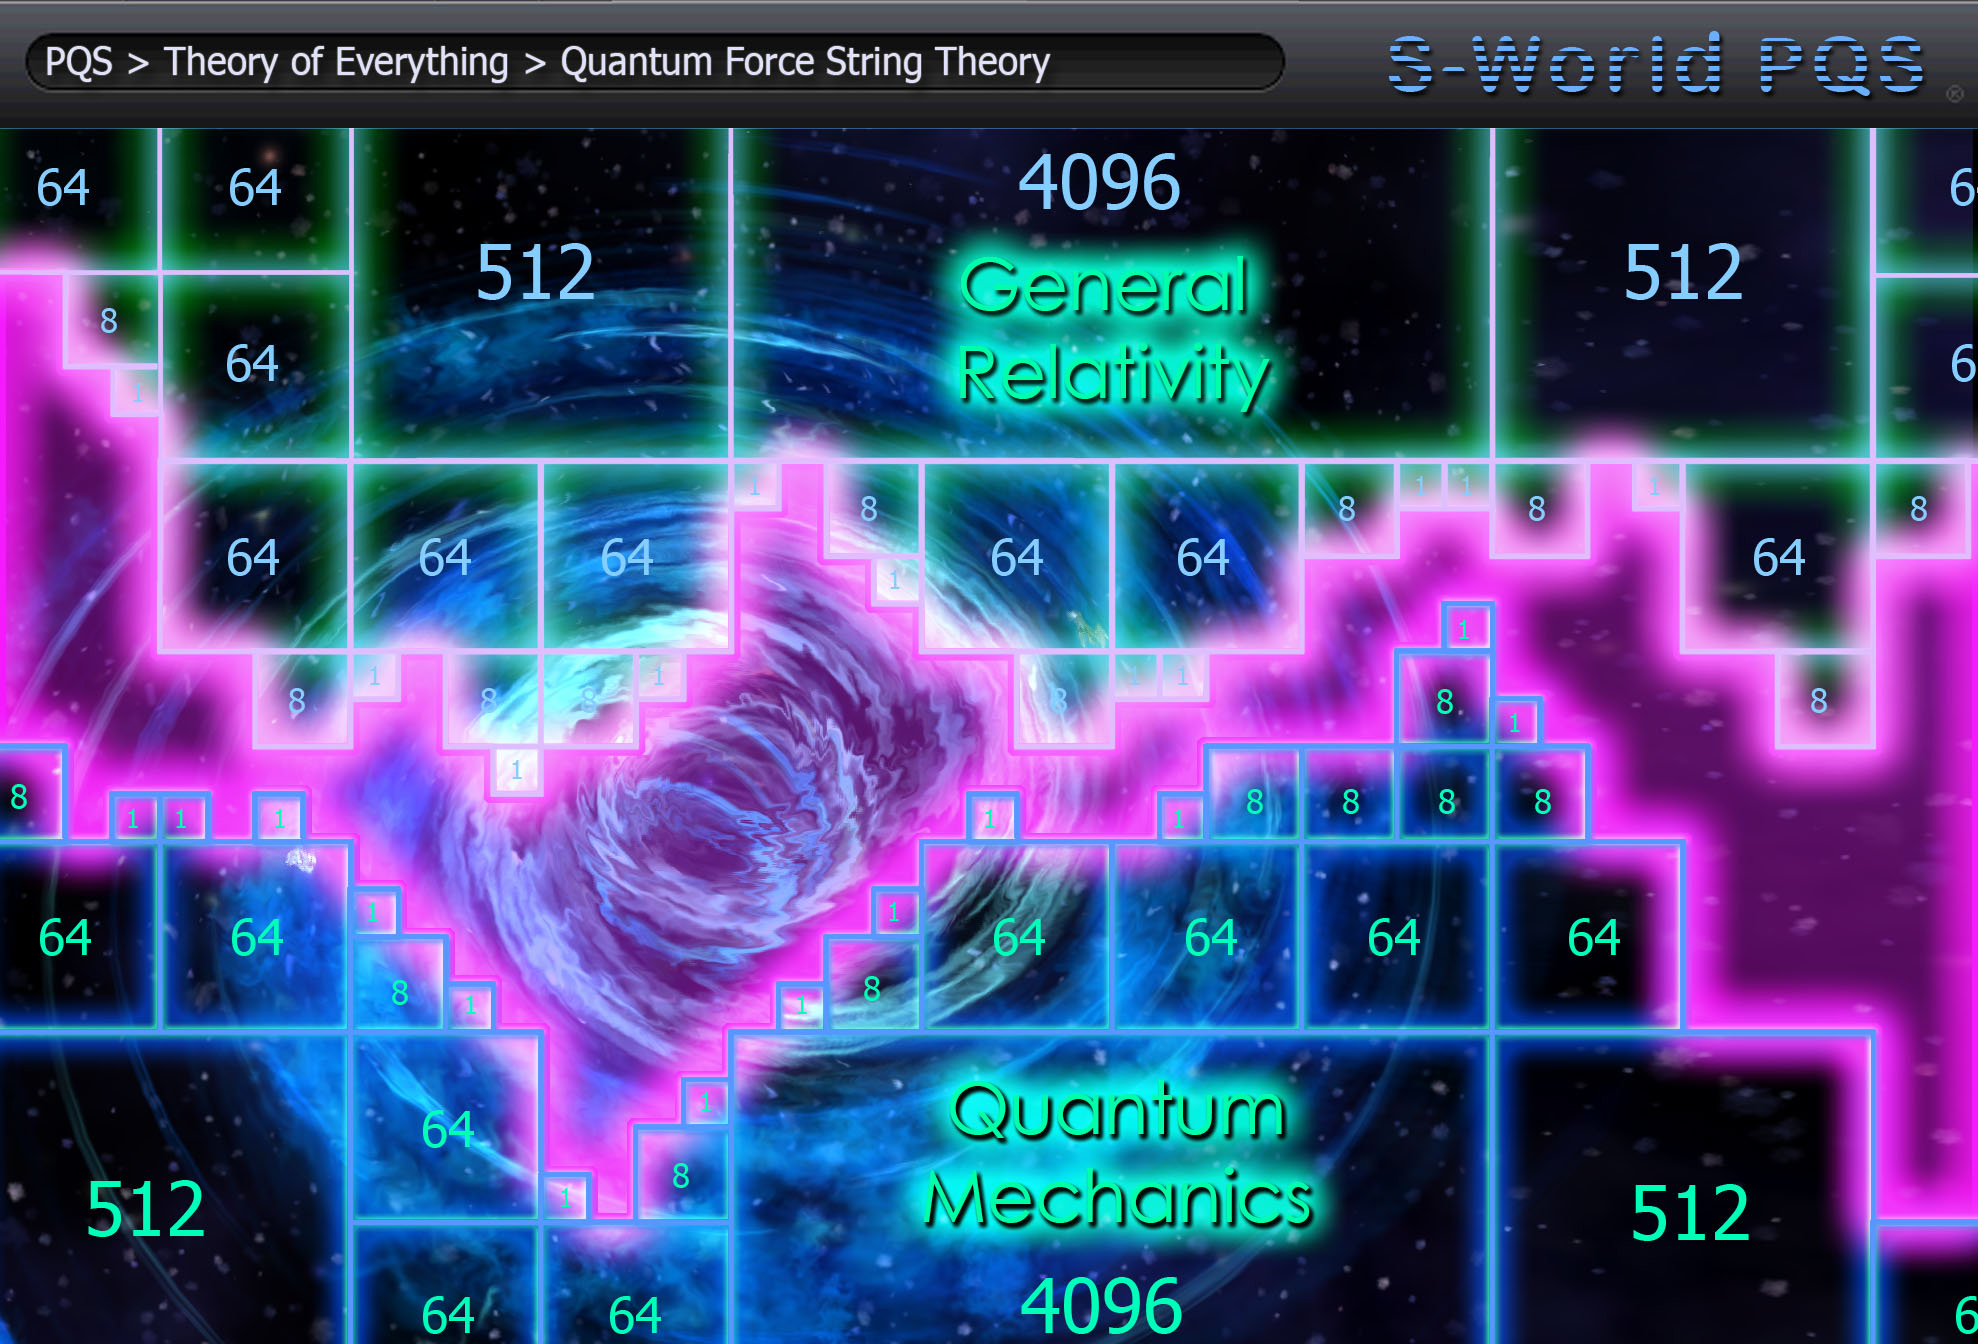 pqs-quantum-force-string-theory